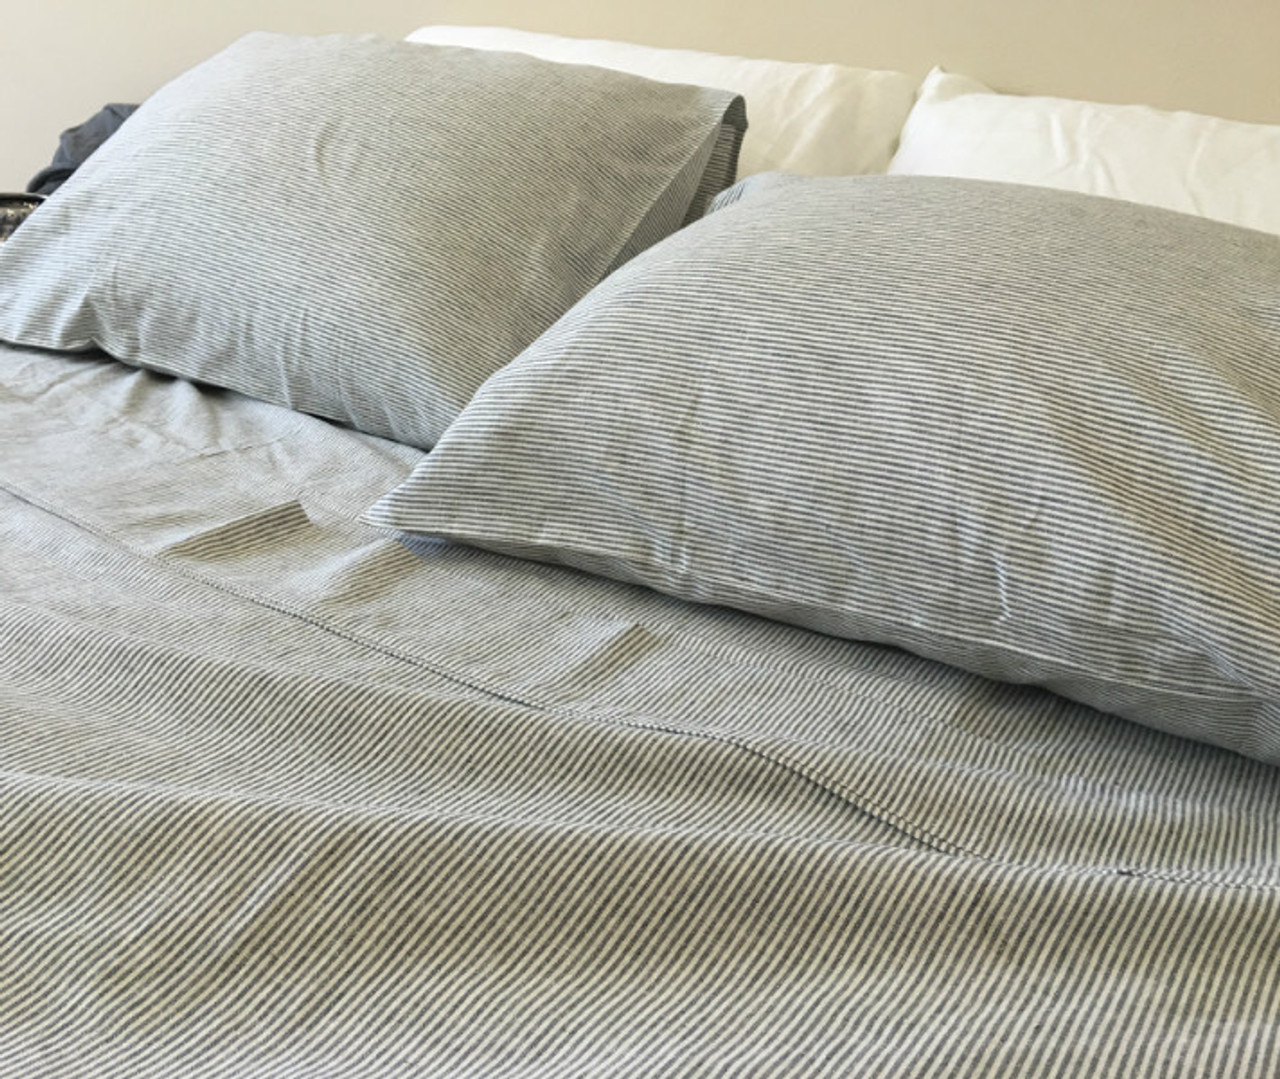 Black And White Striped Bed Sheets Handcrafted By Superior Custom